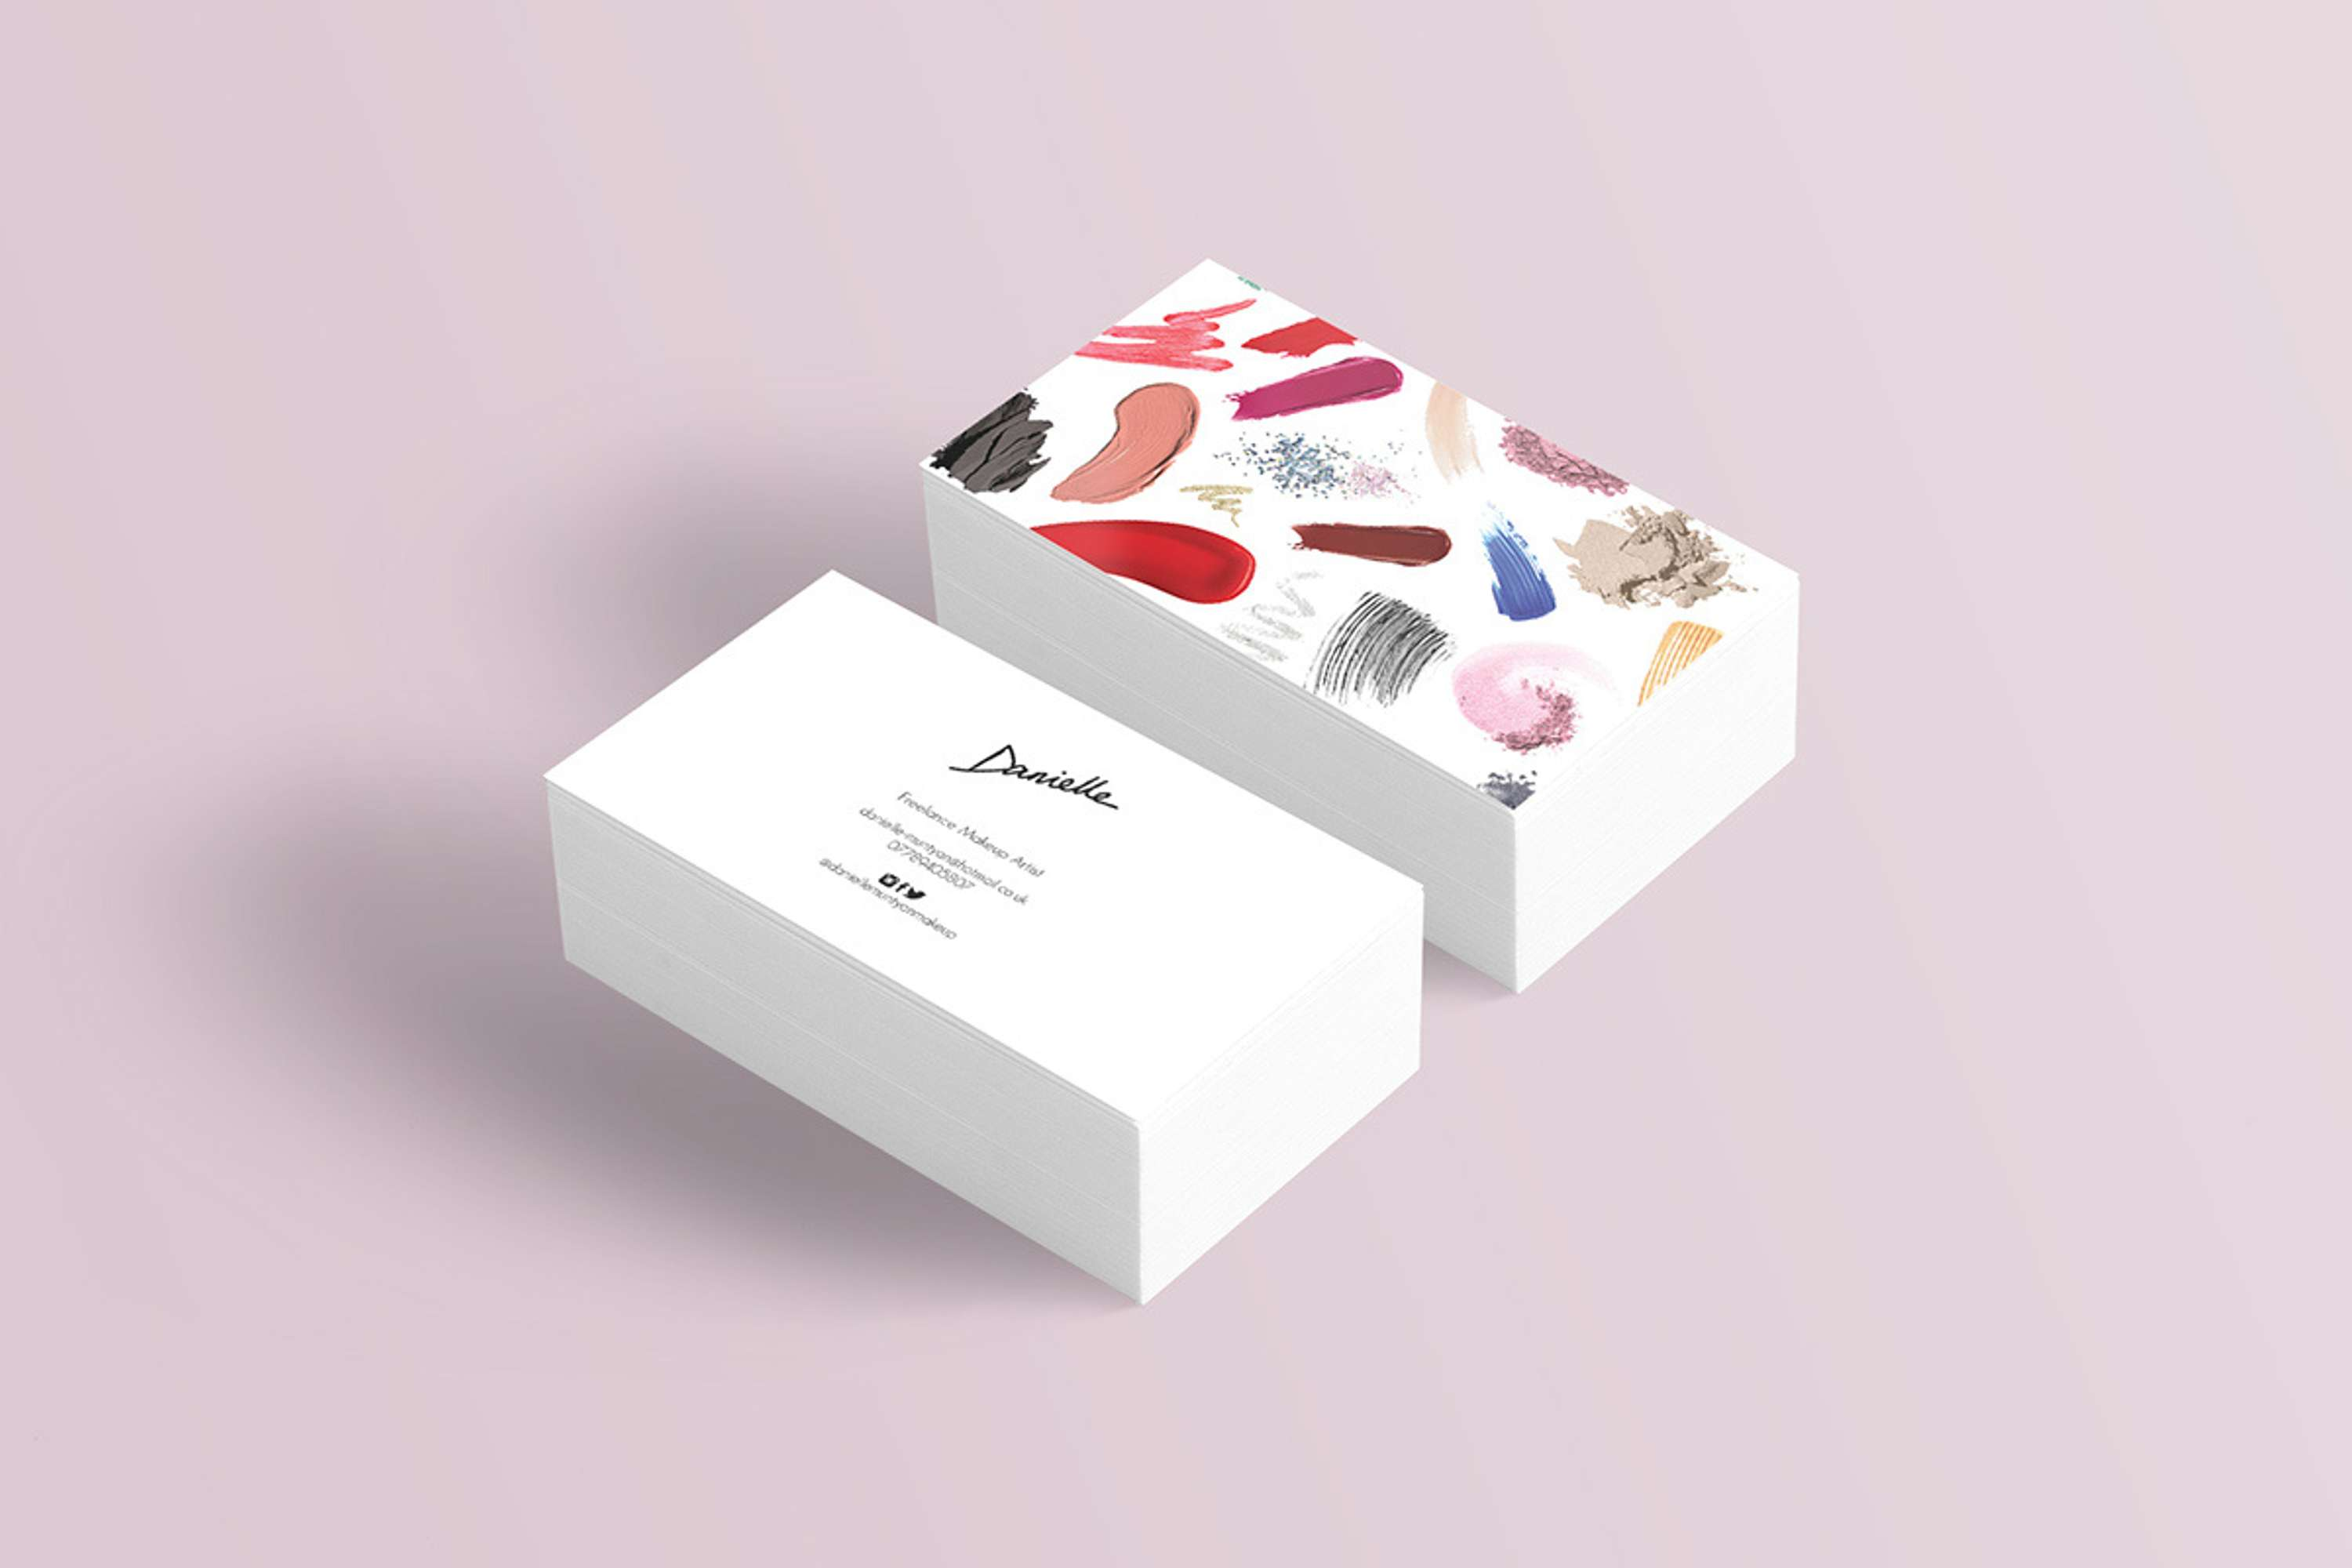 Makeup artist business cards the dots created using swatches of real cosmetics the business cards give a sense of fun playfulness and creativity the main traits of a makeup artist magicingreecefo Images